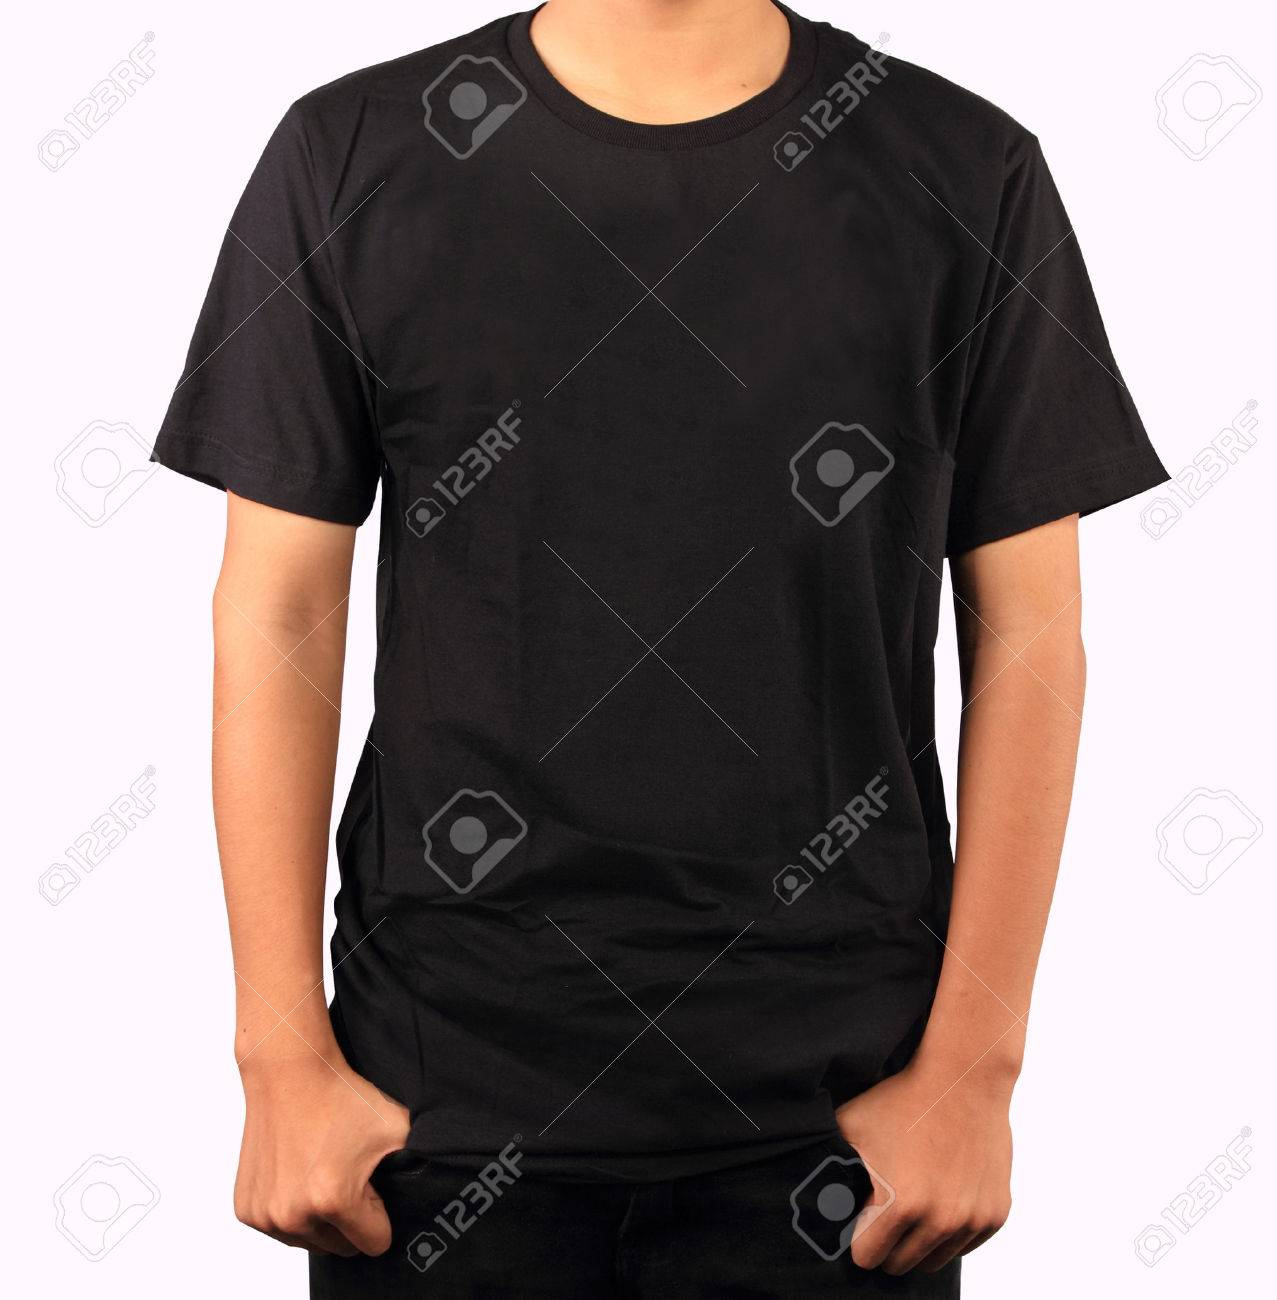 Black Tshirt Template Stock Photo Picture And Royalty Free Image - Pocket t shirt template